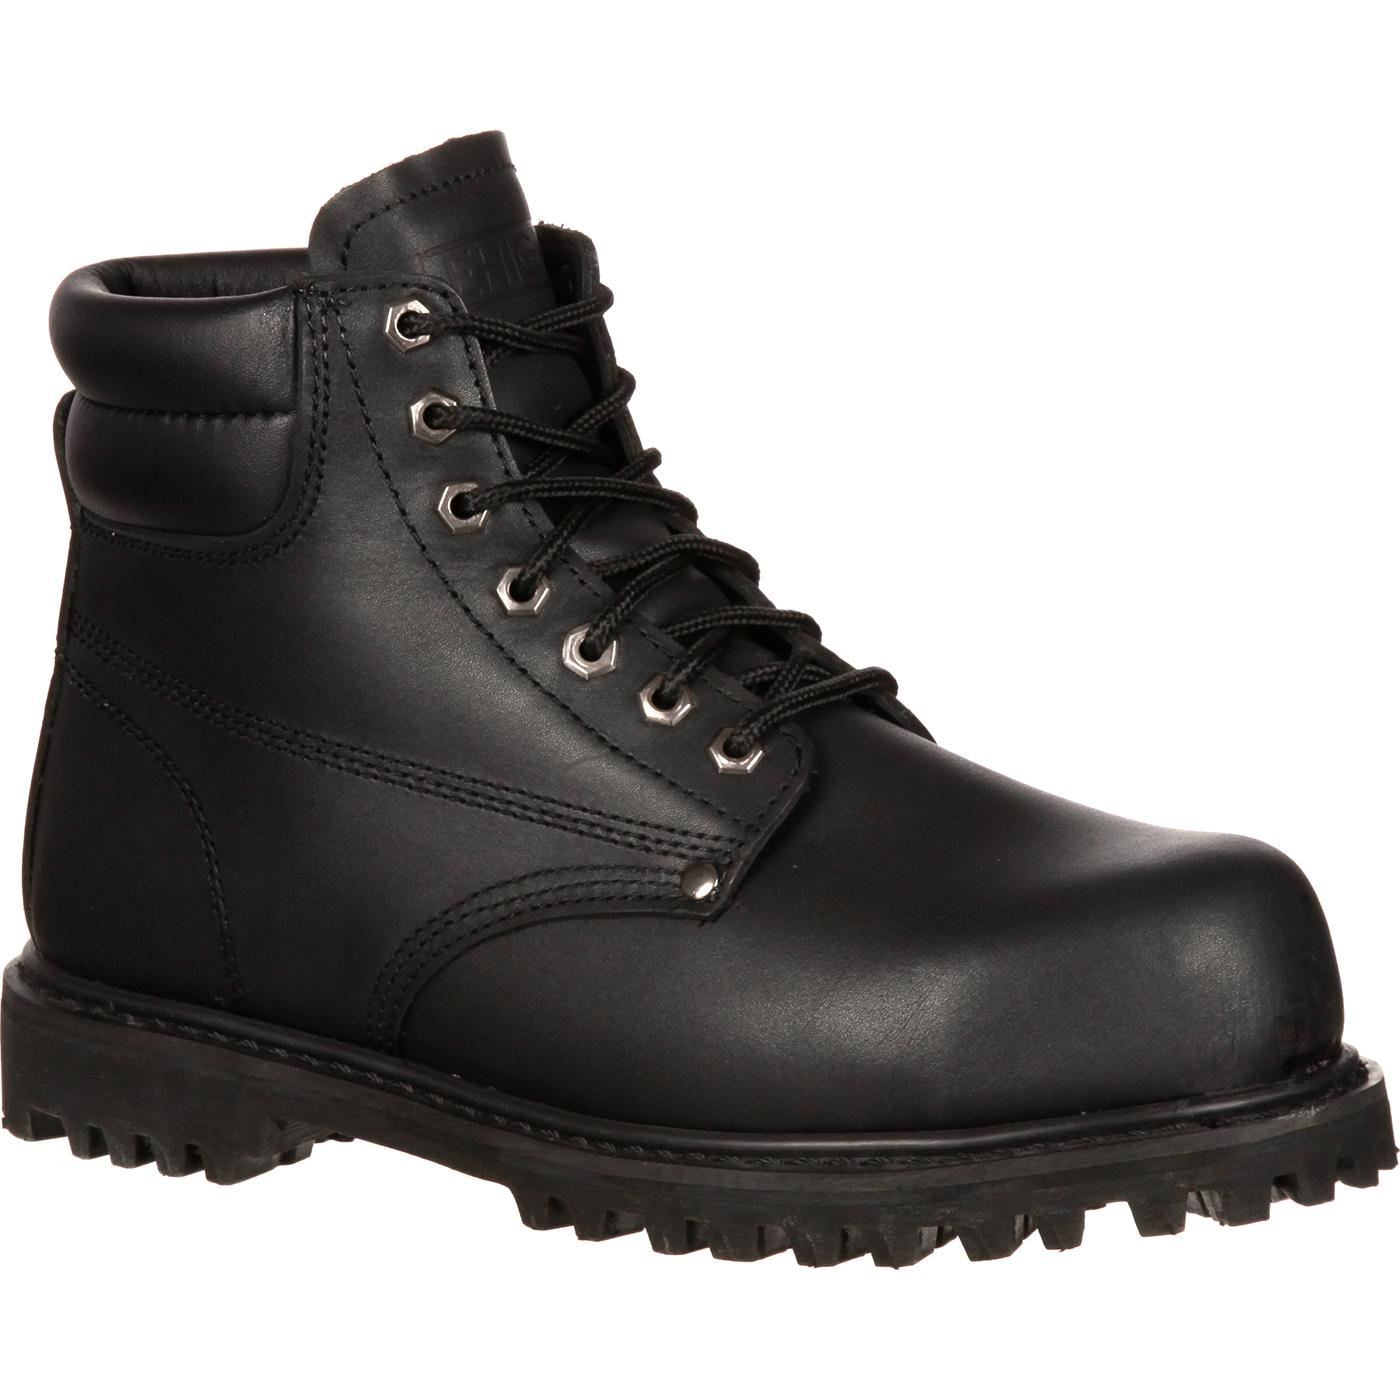 6 Quot Black Steel Toe Work Boots Lehigh Safety Shoes 5236